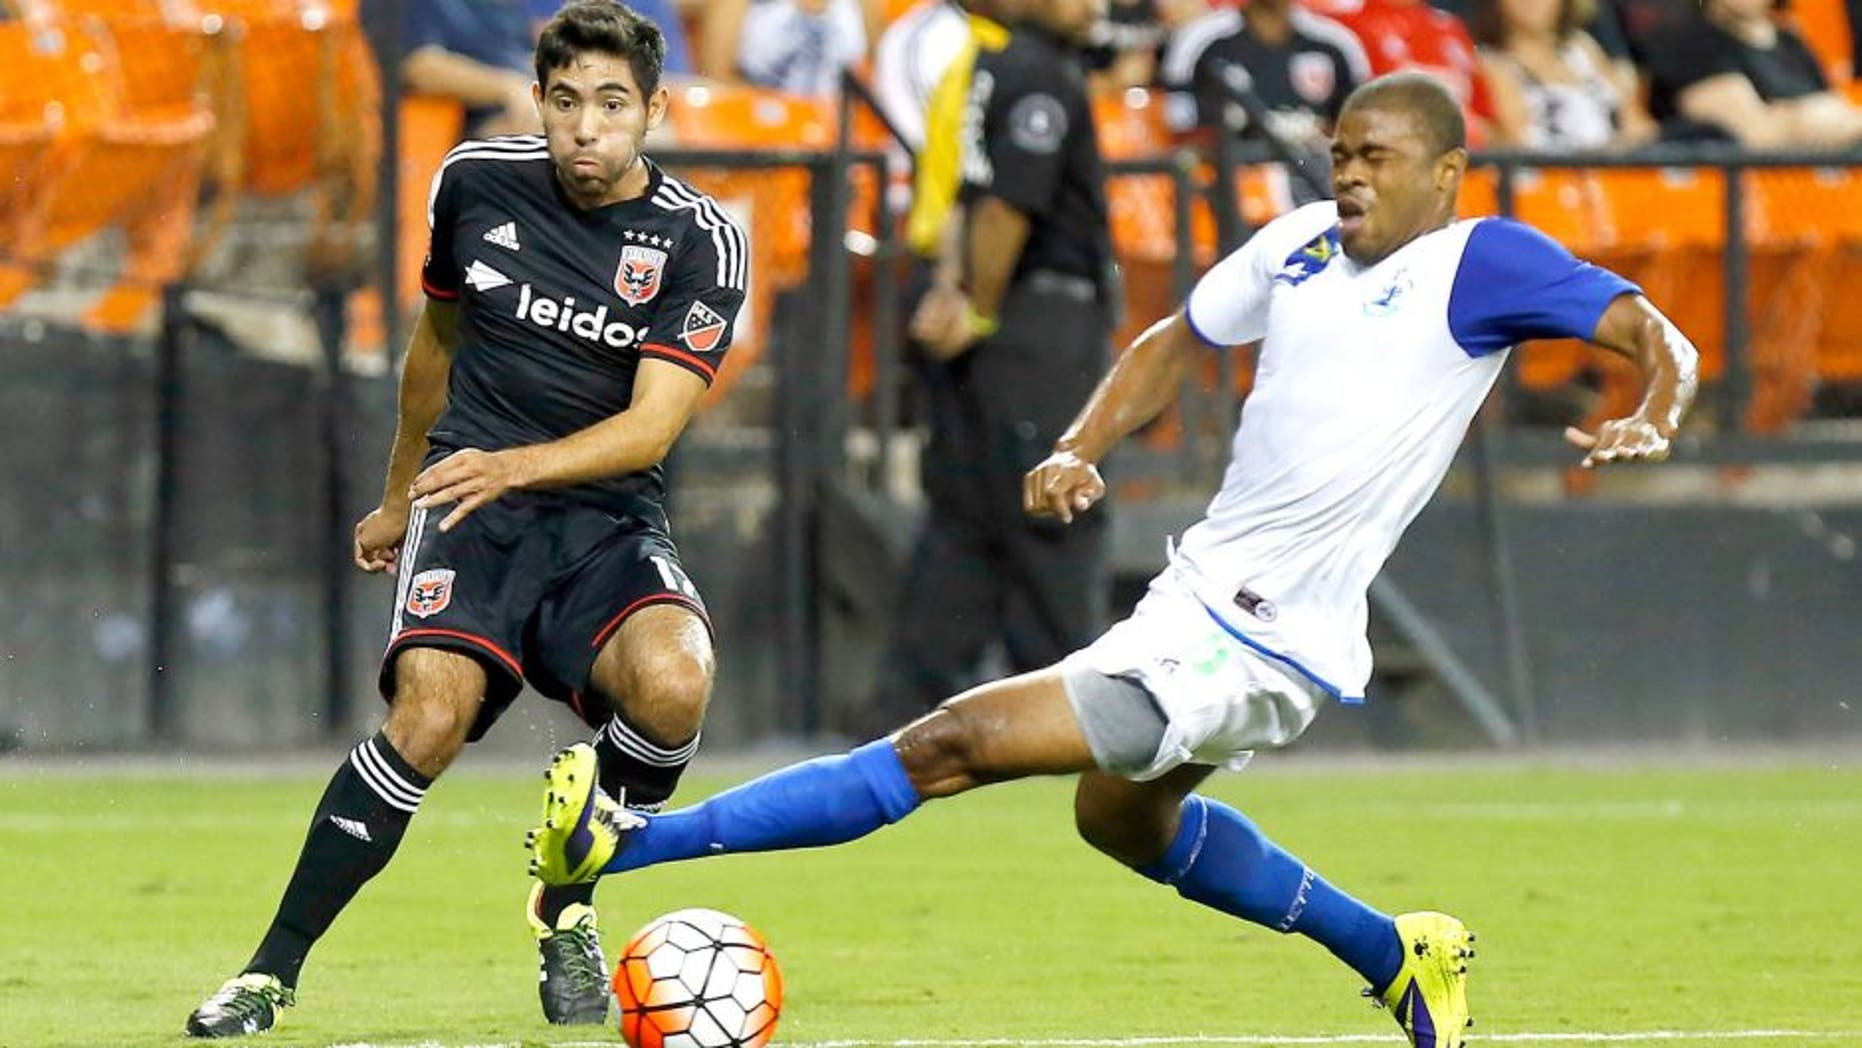 Aug 25, 2015; Washington, DC, USA; D.C. United midfielder Miguel Aguilar (17) passes the ball as Montego Bay F.C. defender Dwayne Holmes (5) defends in the first half at RFK Stadium. United won 3-0. Mandatory Credit: Geoff Burke-USA TODAY Sports